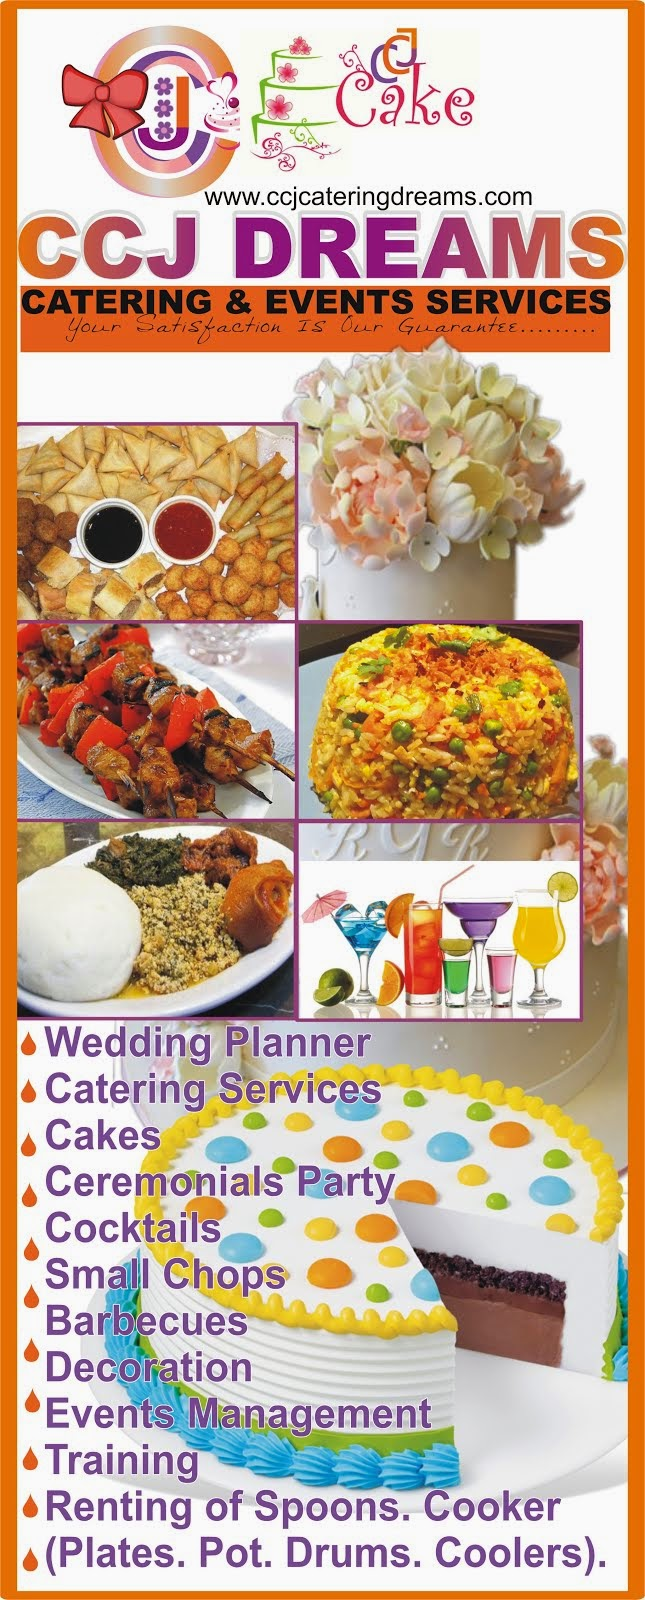 CCJ DREAM CATERING AND EVENTS PLANNER